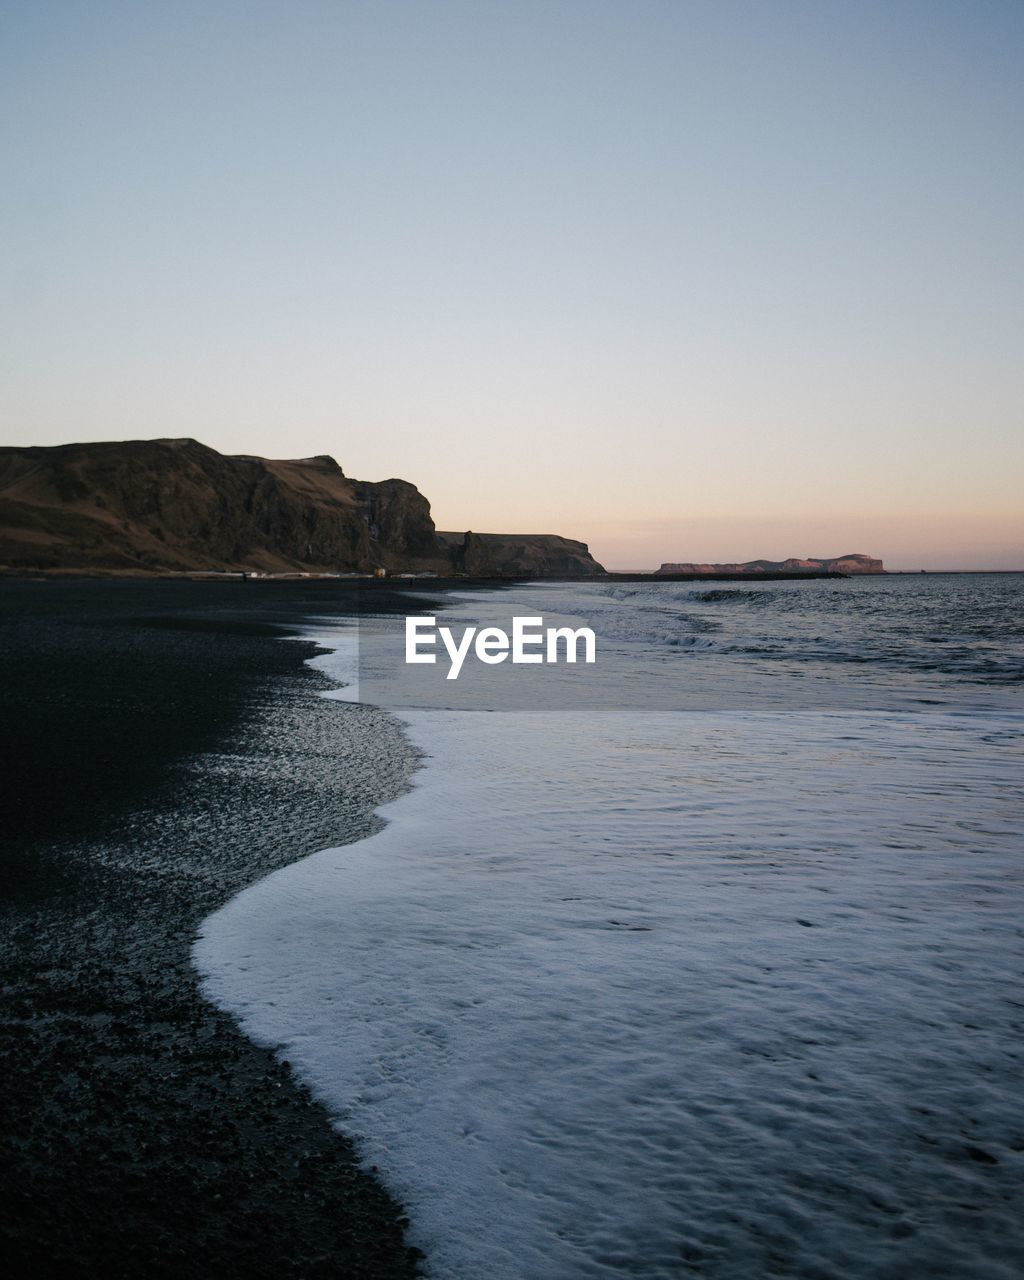 sky, sea, water, tranquility, clear sky, beauty in nature, copy space, scenics - nature, tranquil scene, rock, beach, no people, nature, land, rock - object, solid, waterfront, sunset, rock formation, outdoors